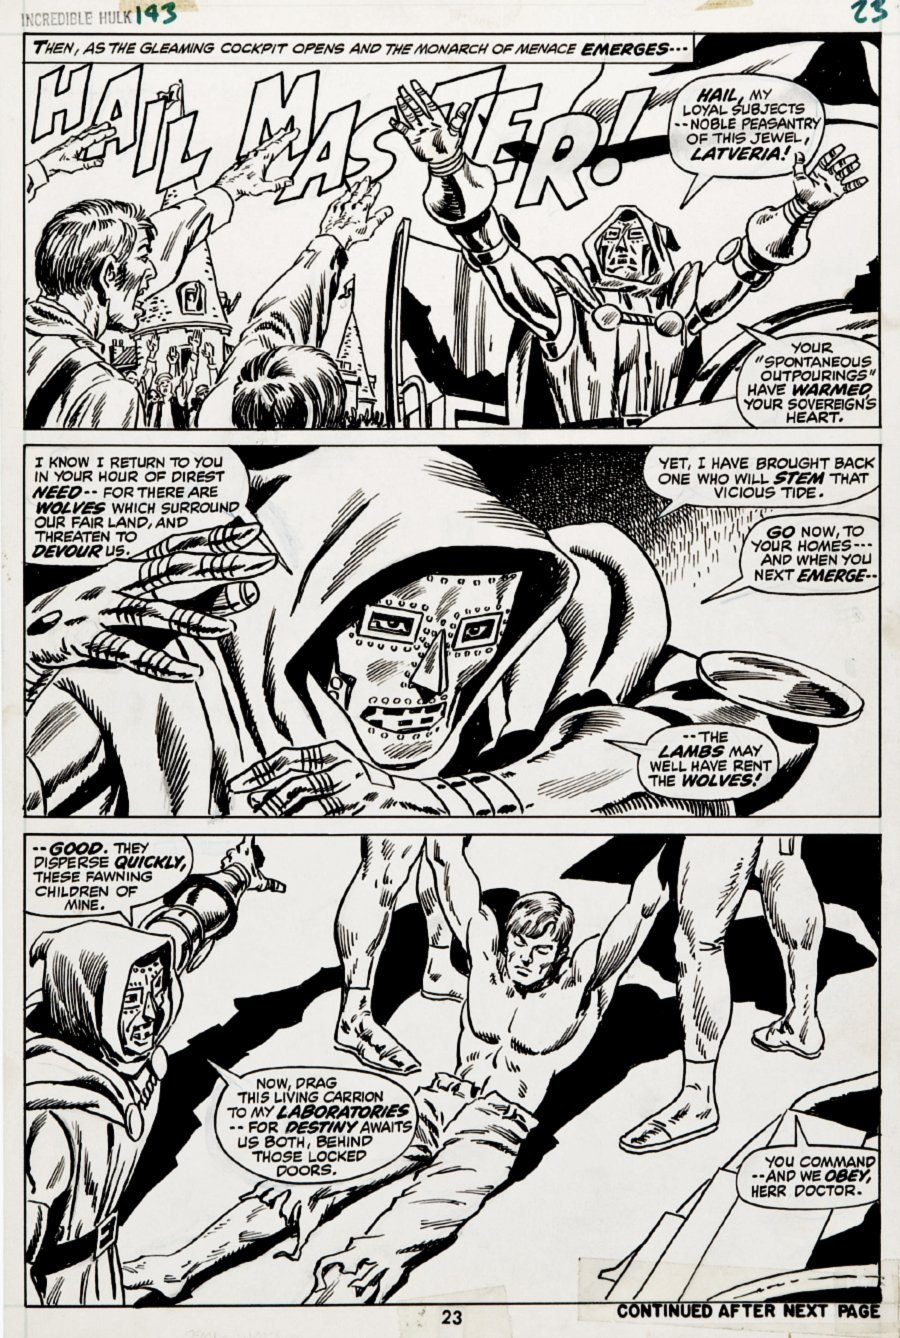 Incredible Hulk #143 p 23 (DR. DOOM IN EVERY PANEL!) 1971